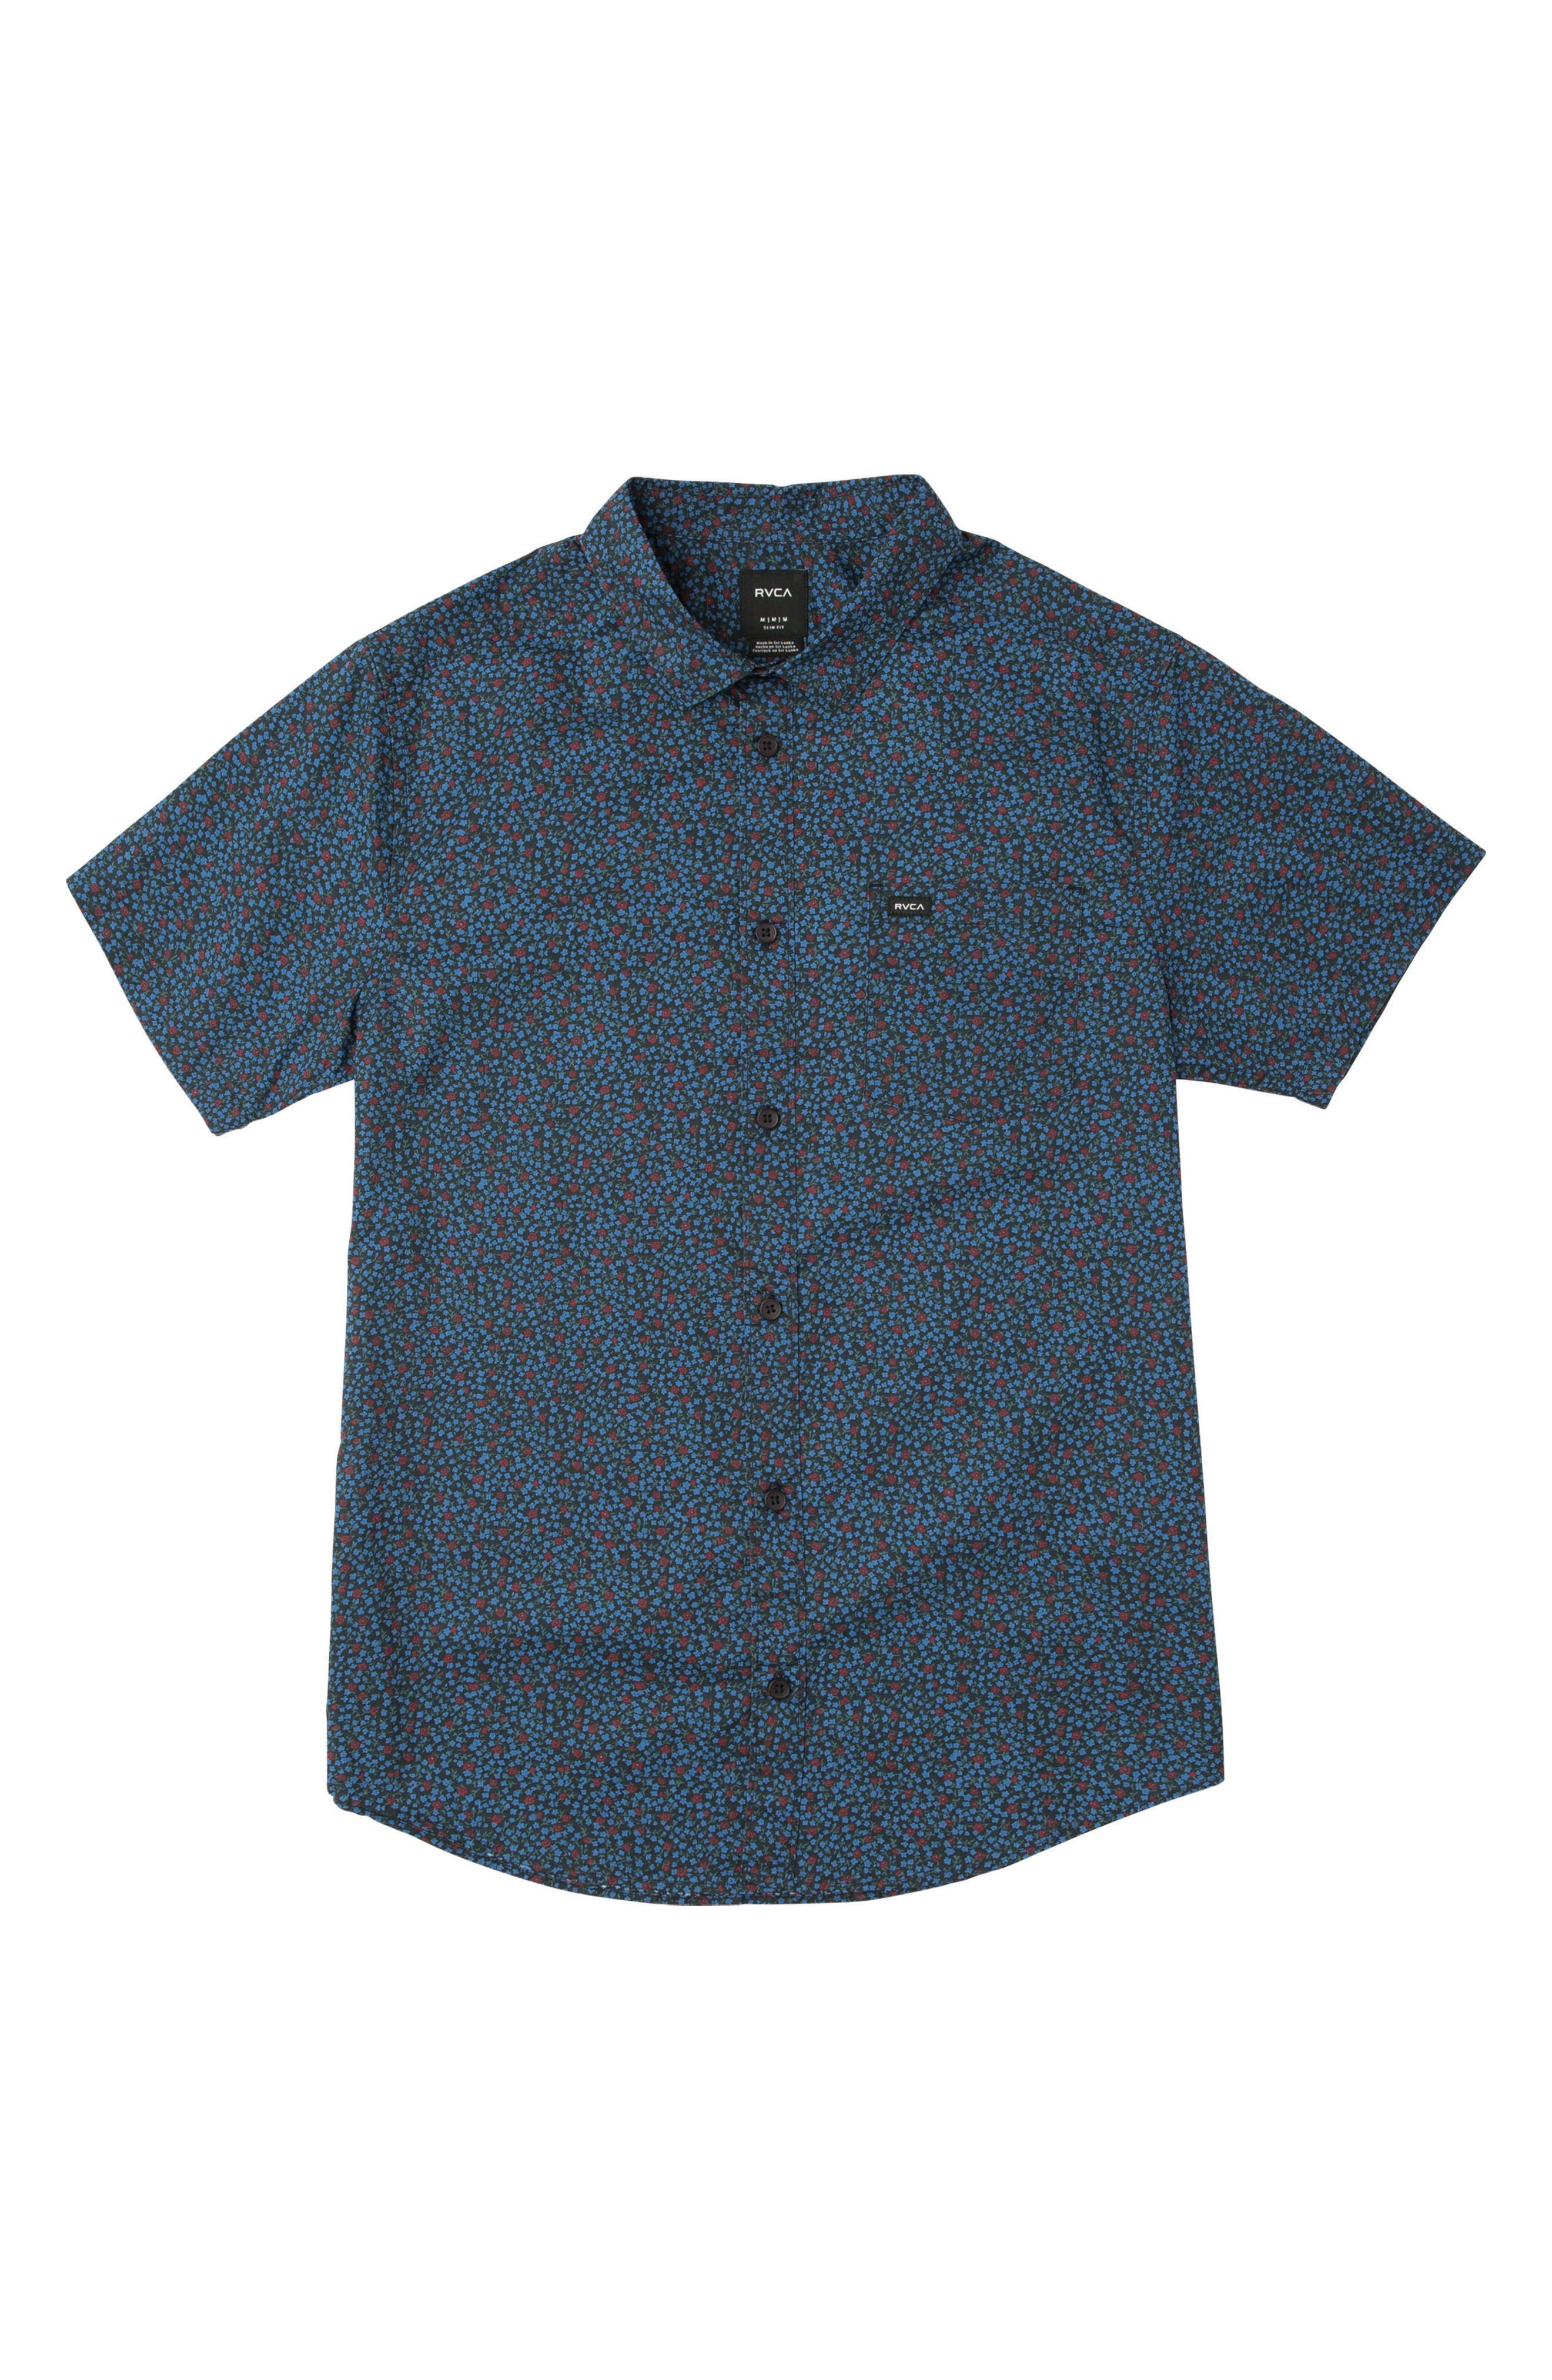 Happy Thoughts Print Woven Shirt,                         Main,                         color, Black